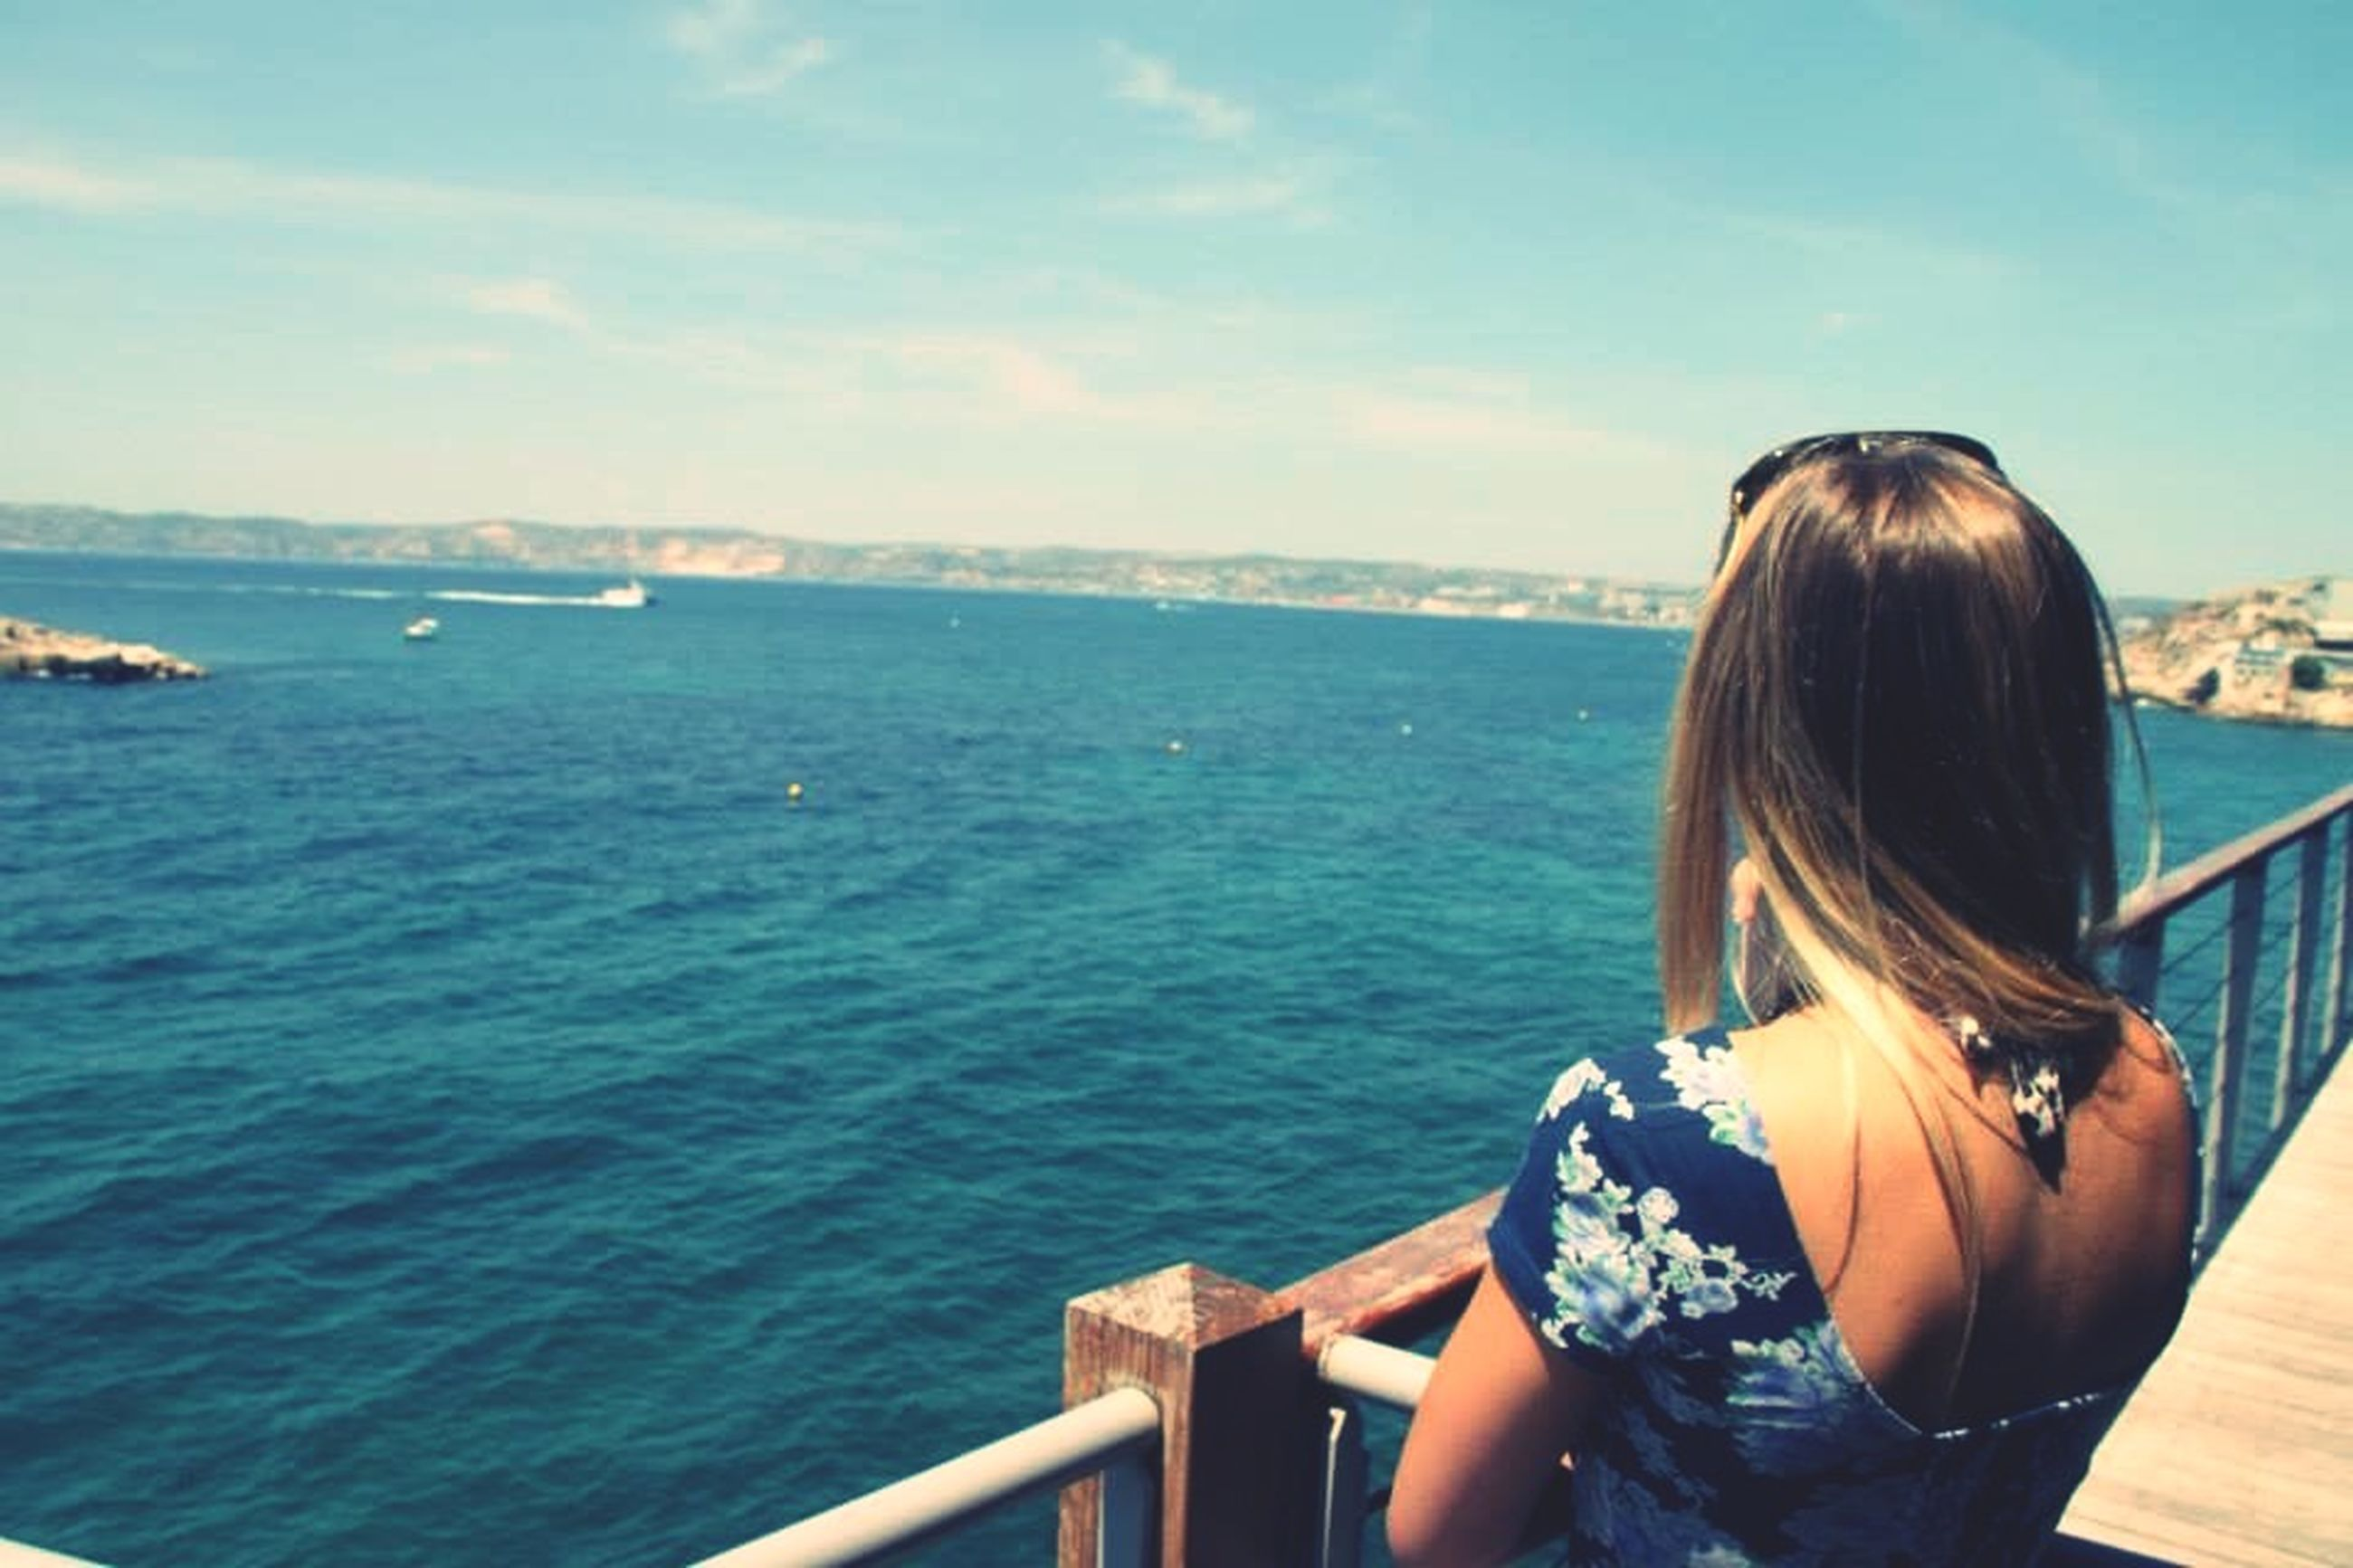 water, sea, lifestyles, leisure activity, young adult, rear view, sitting, young women, long hair, nautical vessel, sky, person, vacations, scenics, boat, relaxation, horizon over water, looking at view